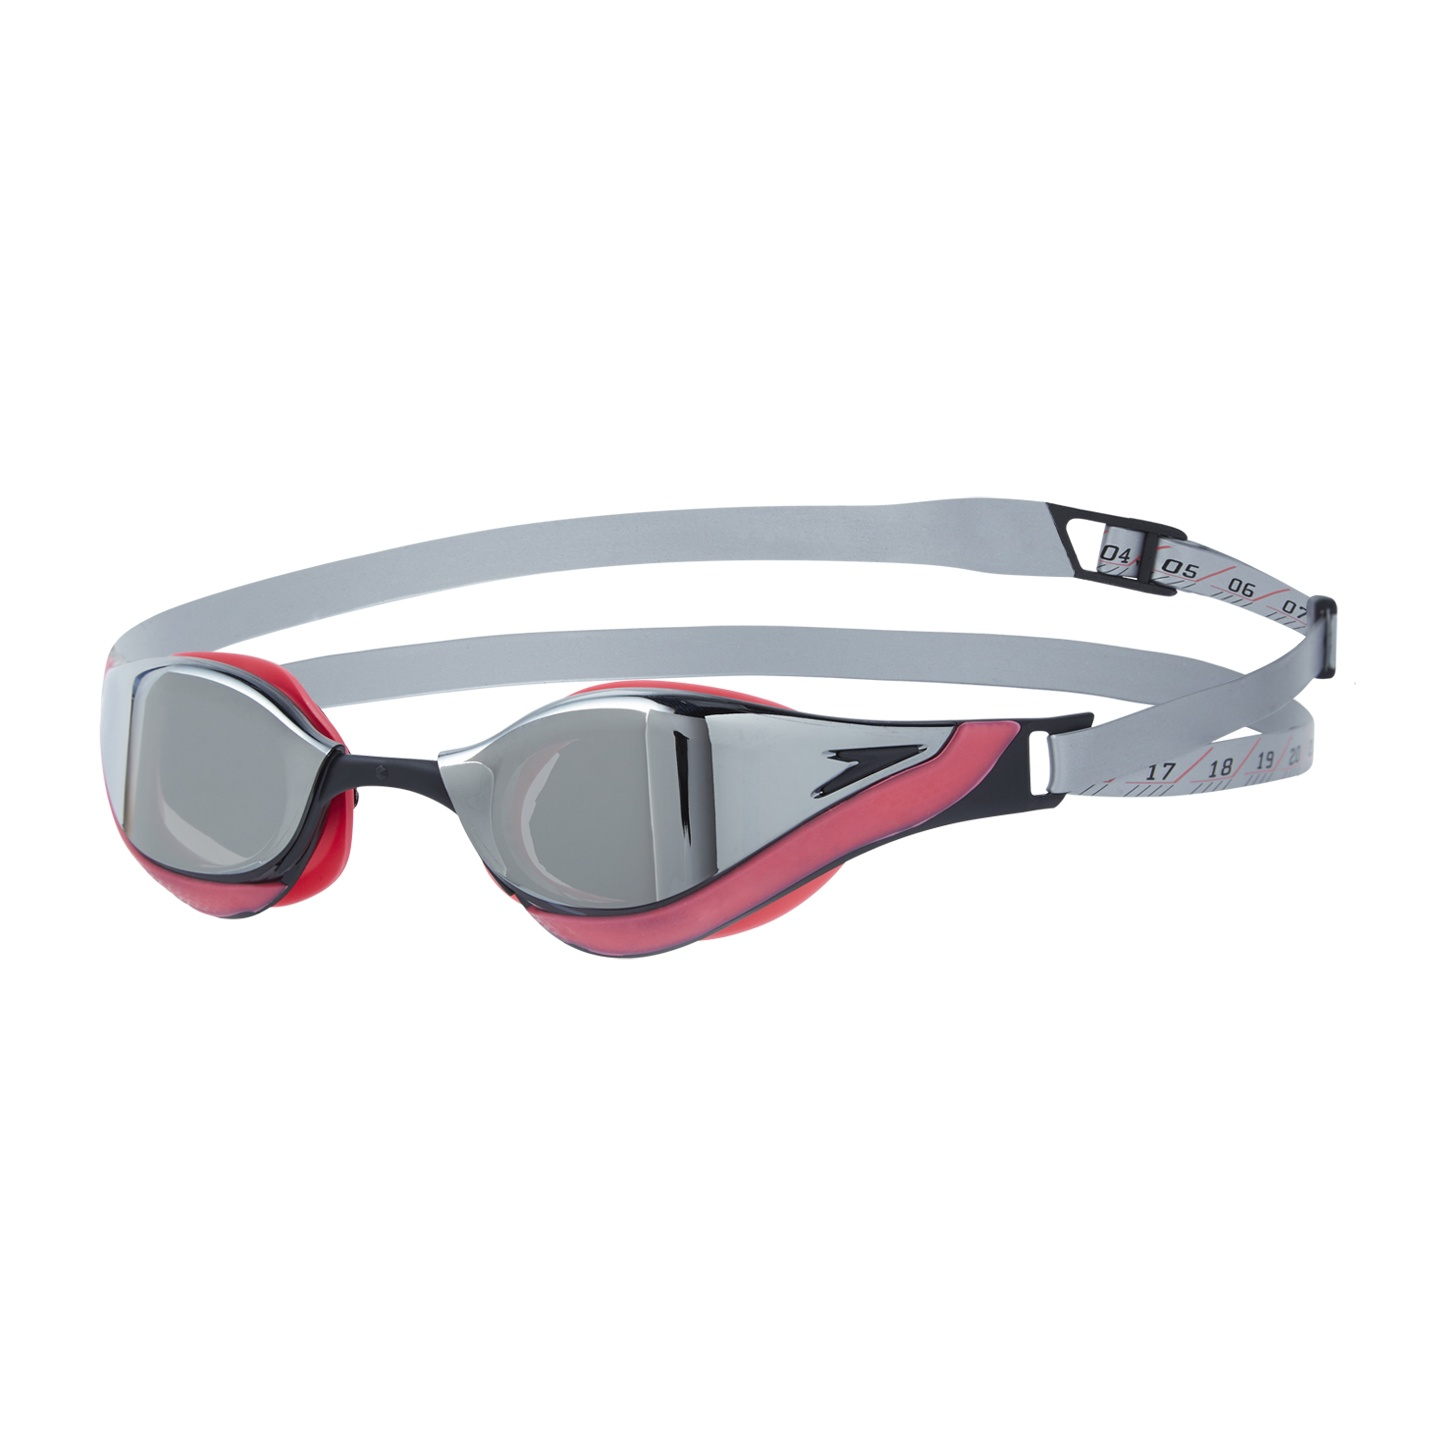 Fastskin Pure Focus Mirror Goggles Silver/Phoenix Red